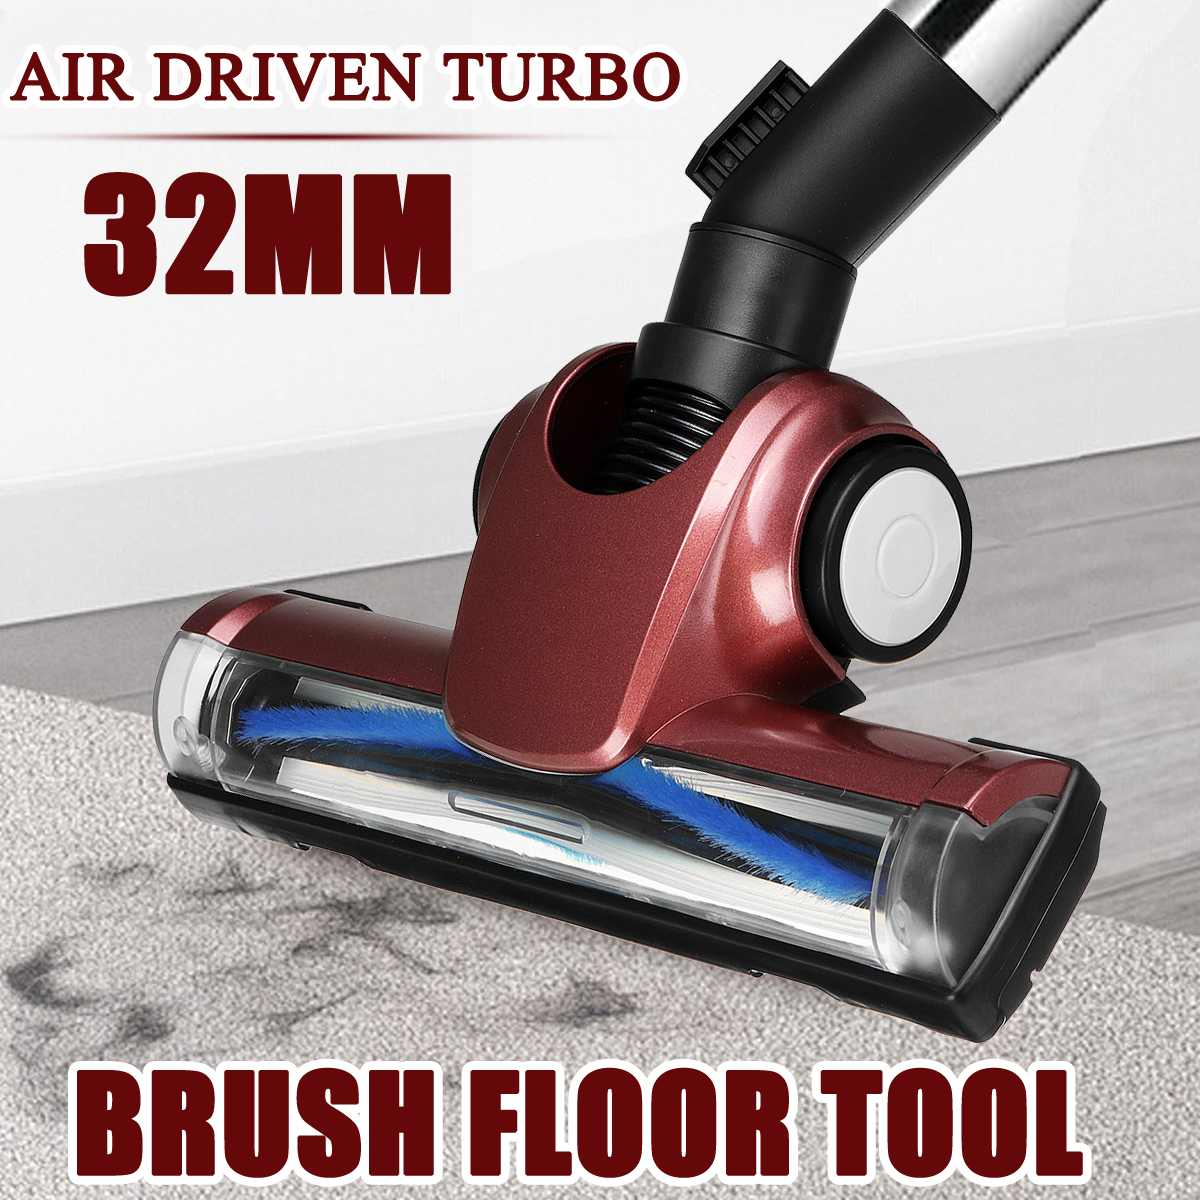 32mm Vacuum Cleaner Brush Floor Cleaner Head Air Driven Vacuum Turbo Nozzle Carpet Floor Tools For Dyson DC52 DC58 DC59 V6 DC62 hi q 21 6v 2200mah li ion rechargeable battery replacement for dyson battery dc61 dc62 dc72 dc58 dc59 965874 02 vacuum cleaner